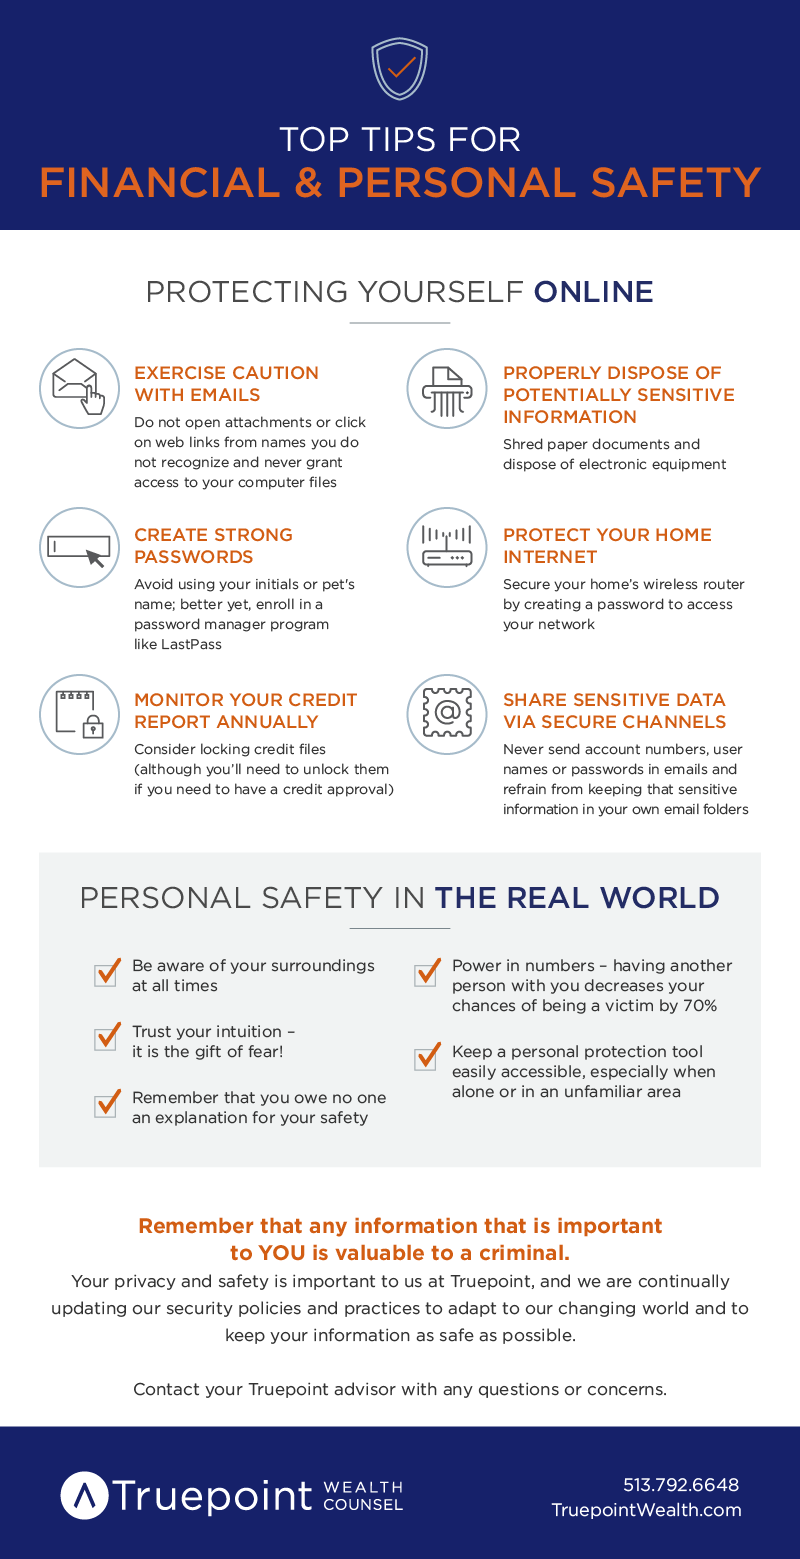 Top Tips for Financial & Personal Safety [Infographic]